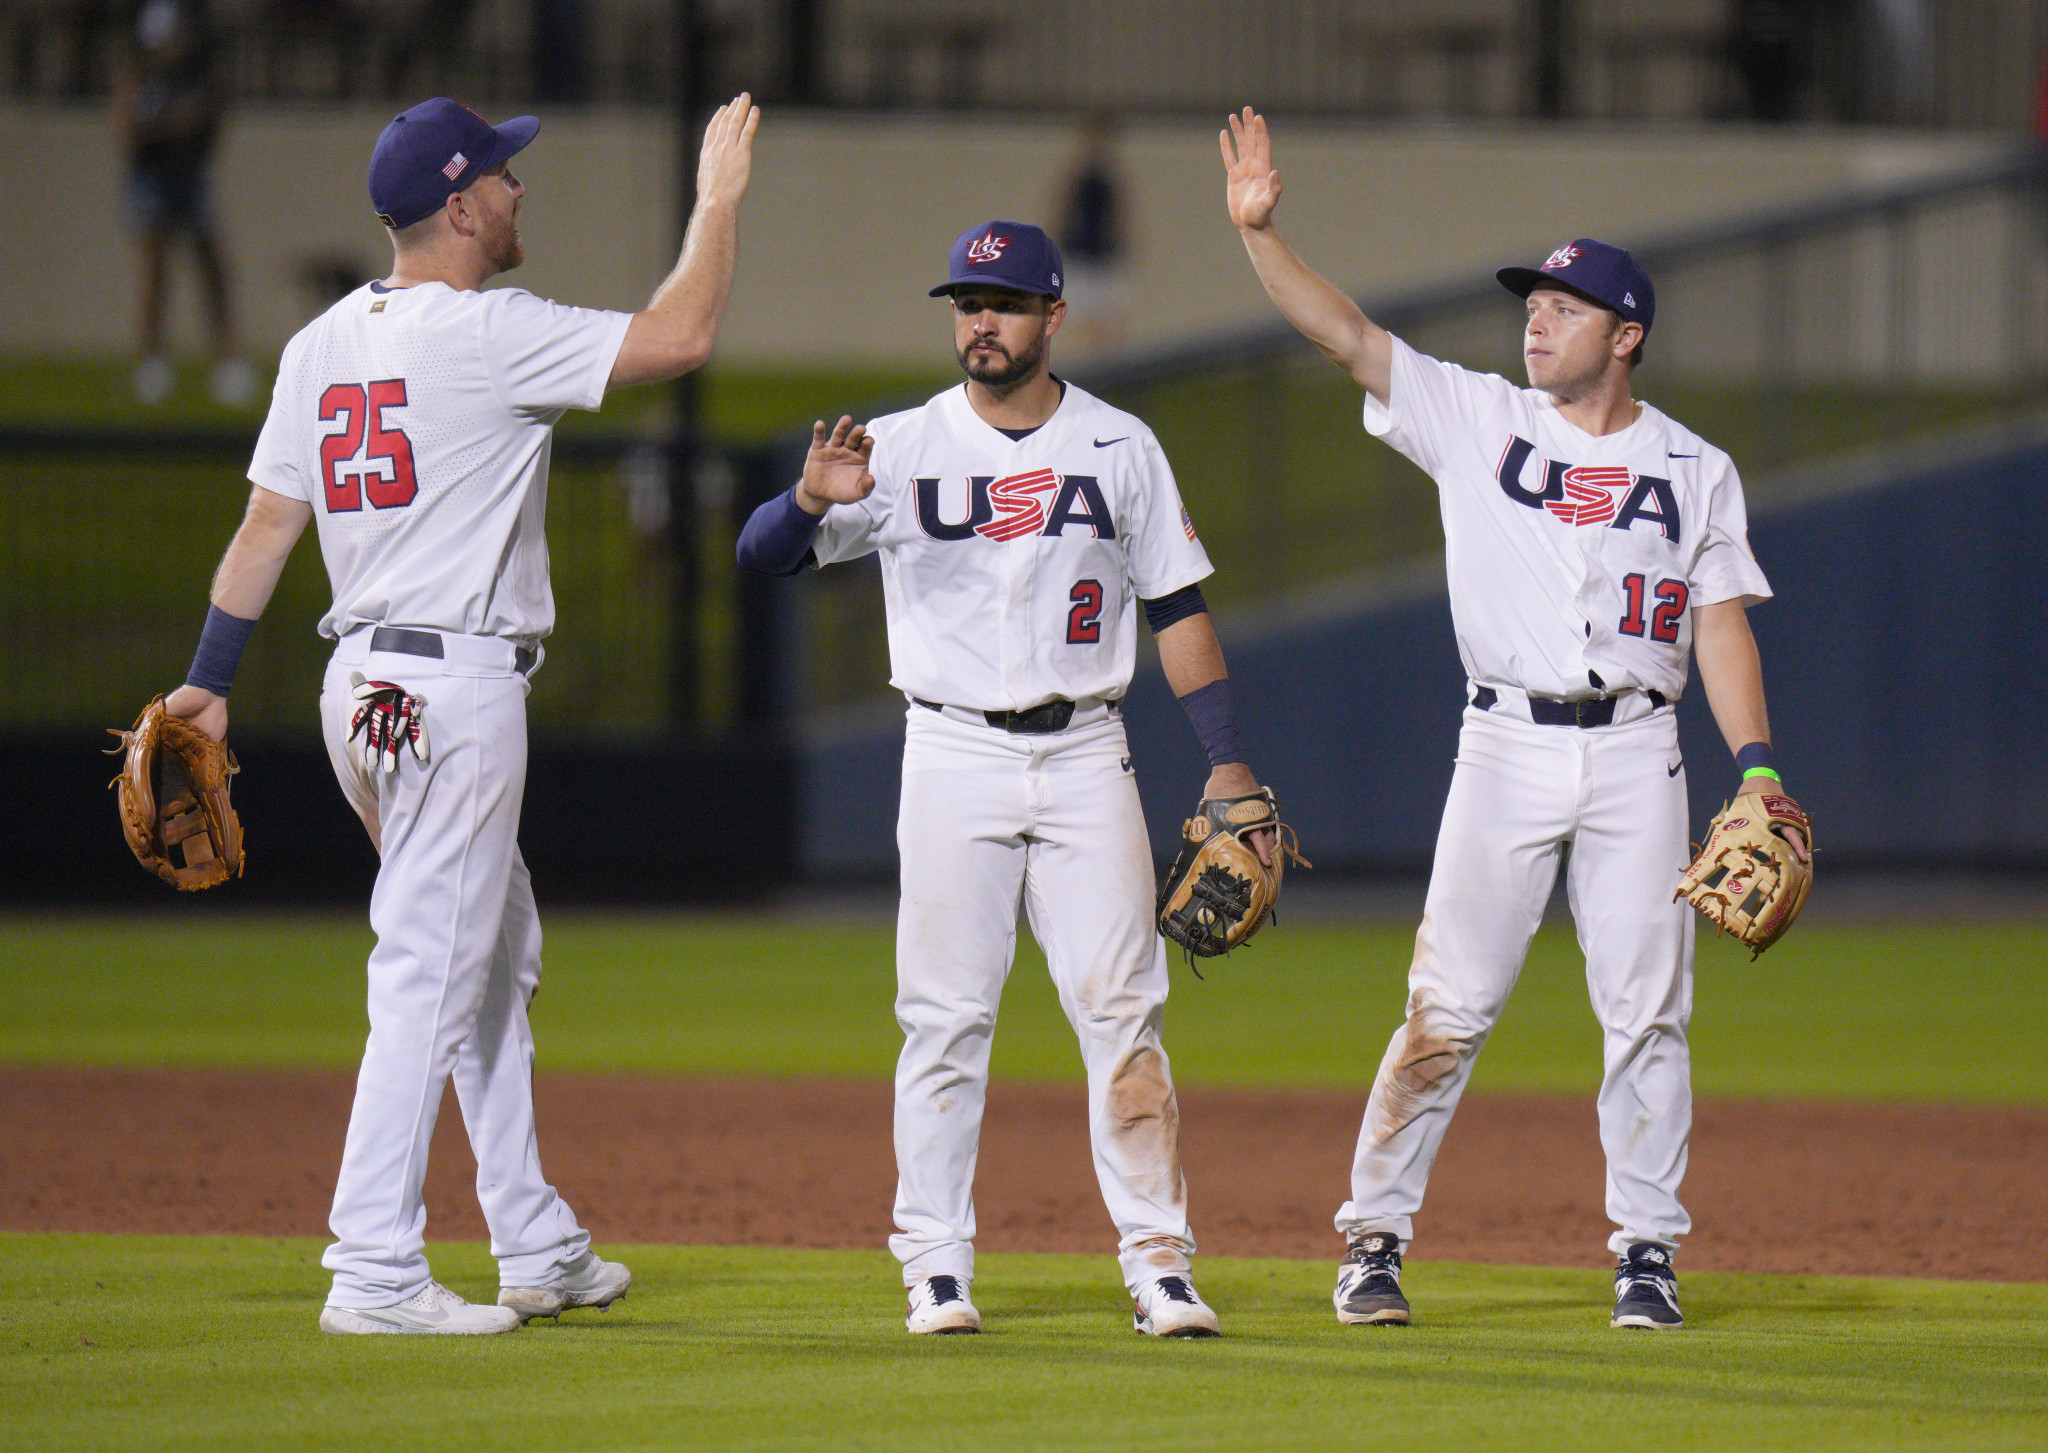 US defeat Canada to move within a win of Olympic baseball berth